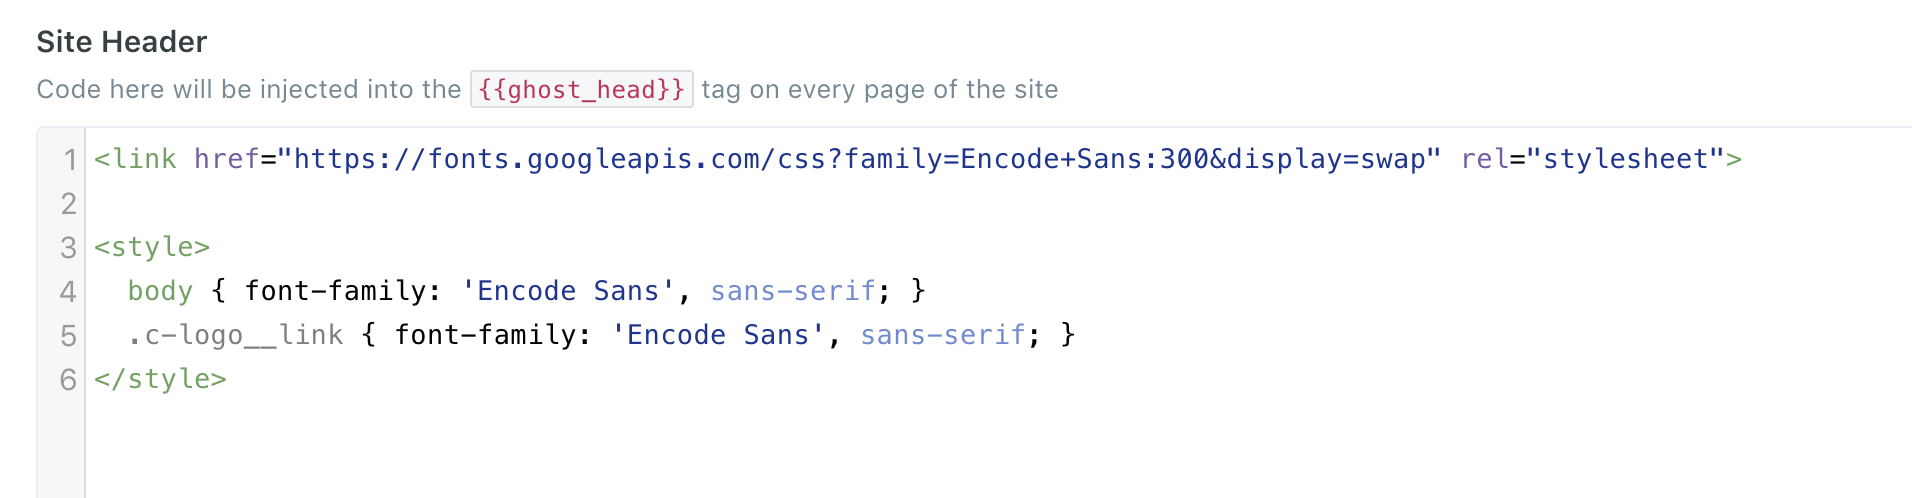 Code Inection Site Header section code to Change a Font in Ghost Theme